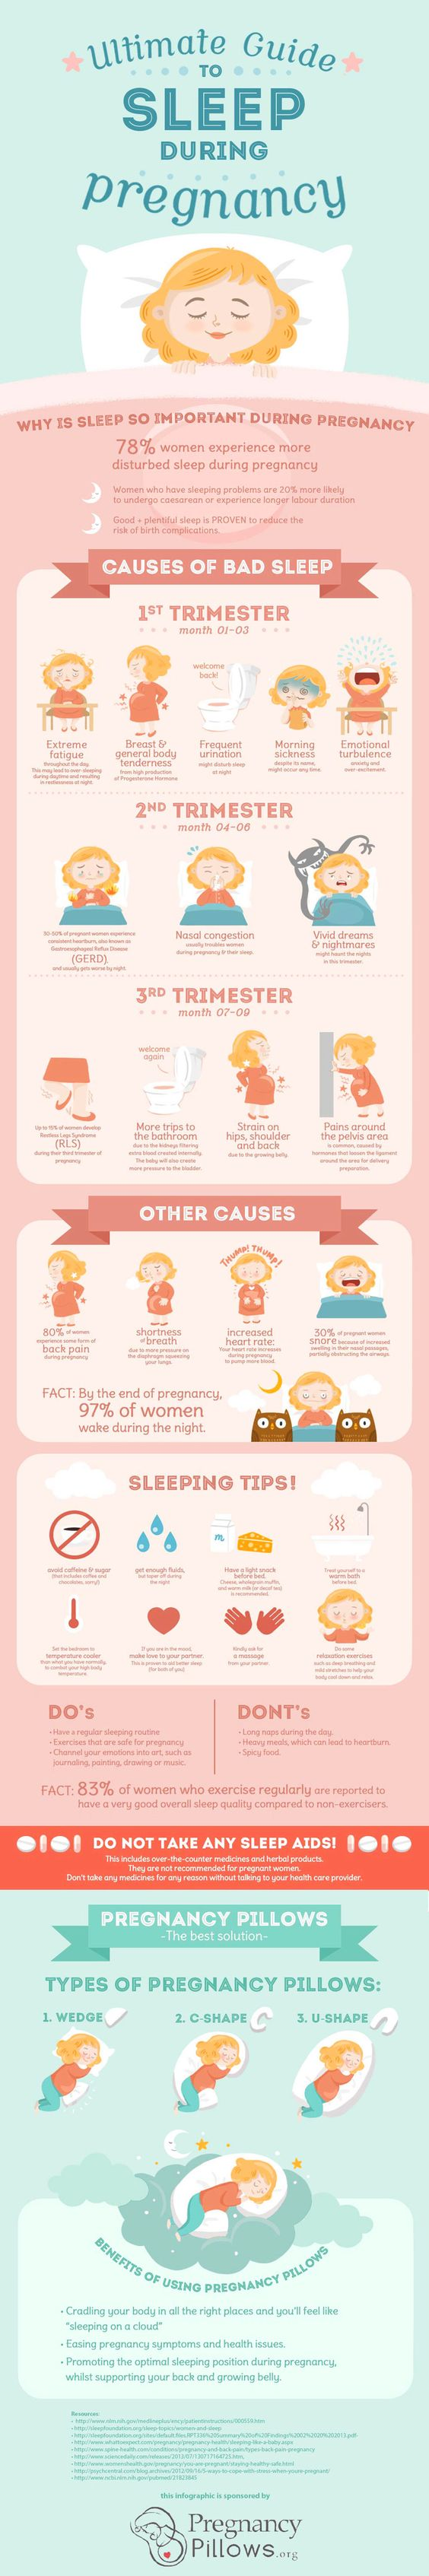 sleeping during pregnancy infographic